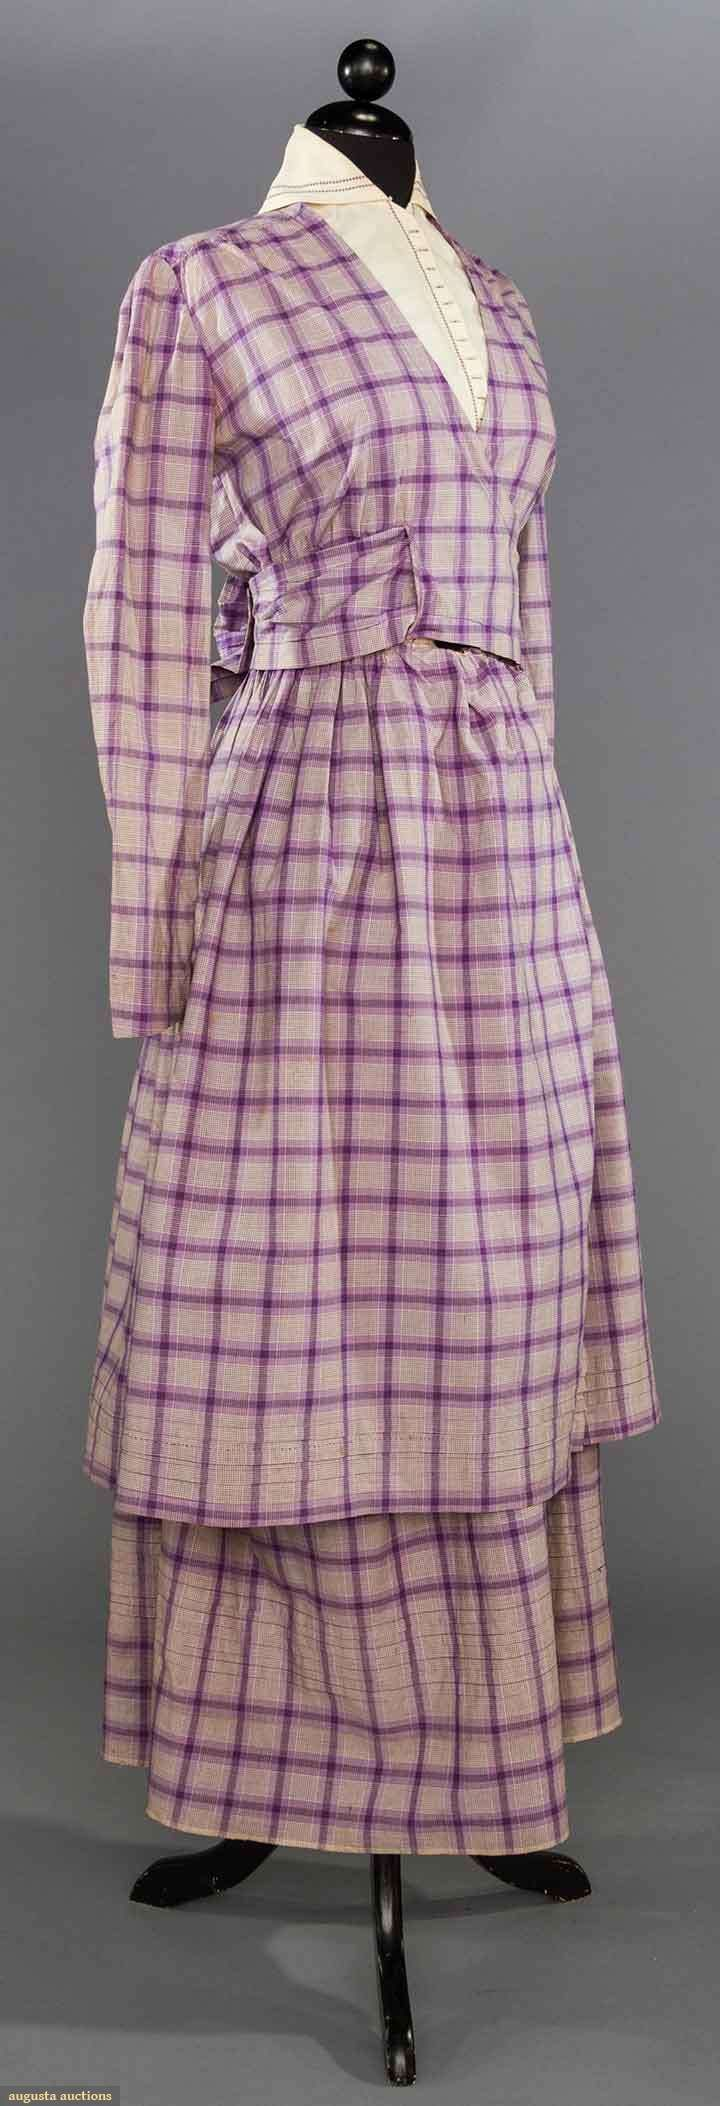 PURPLE DAY DRESS, 1915-1918  May 9, 2017 - CATALOG SALE Sturbridge, Massachusetts